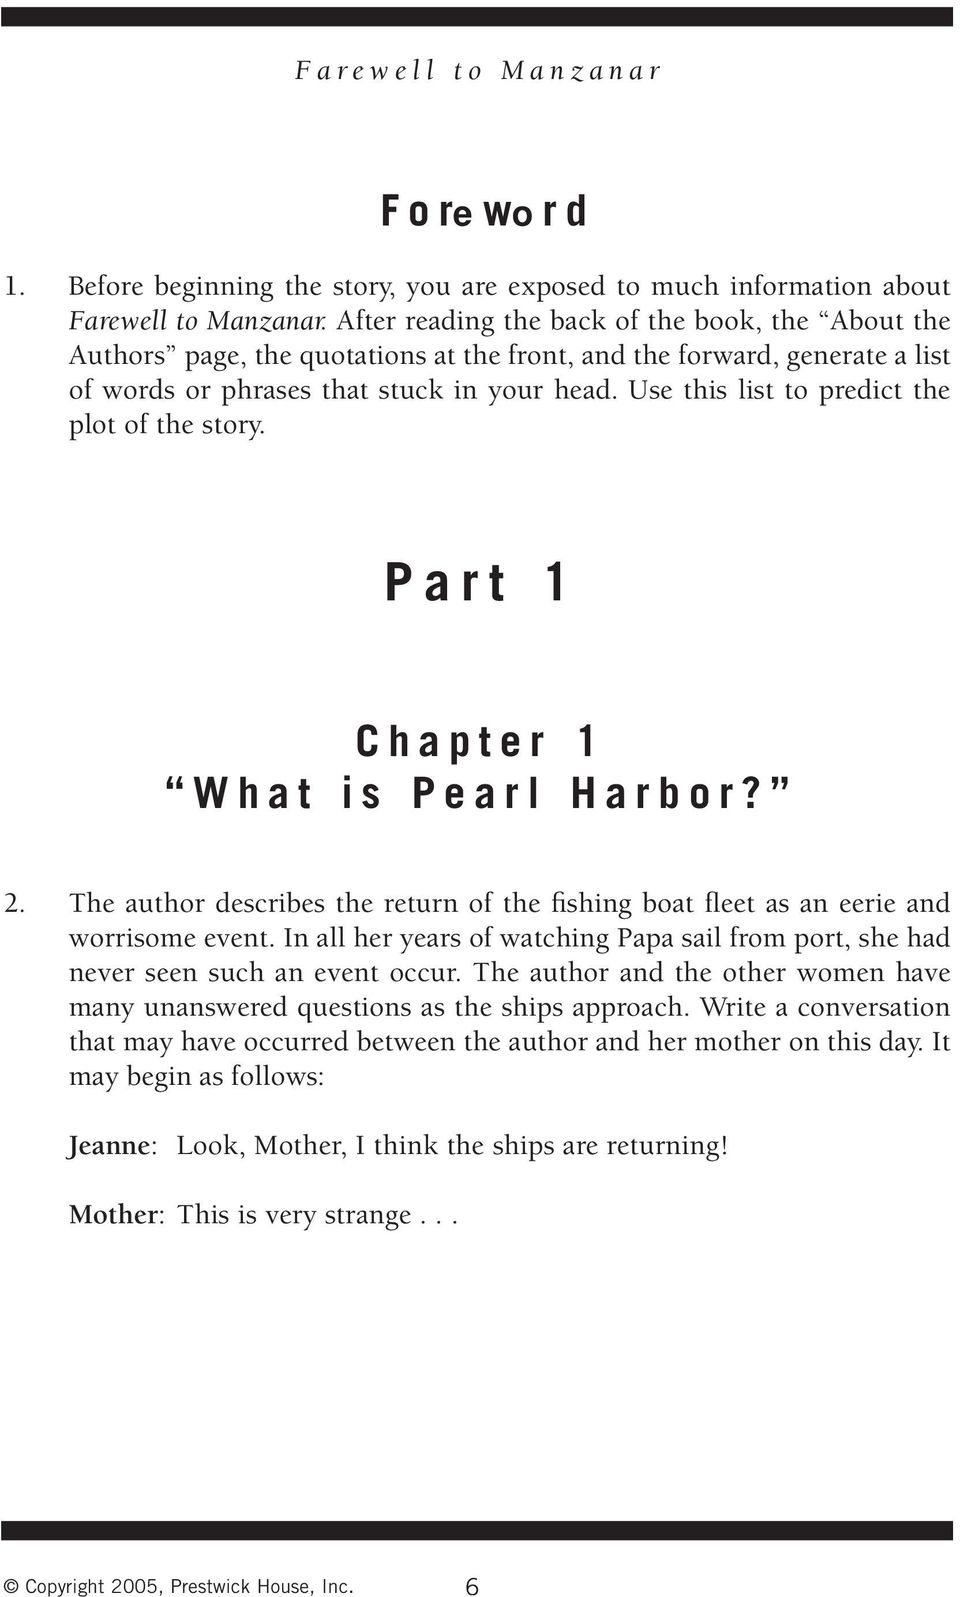 Farewell To Manzanar Pdf Chapter 7